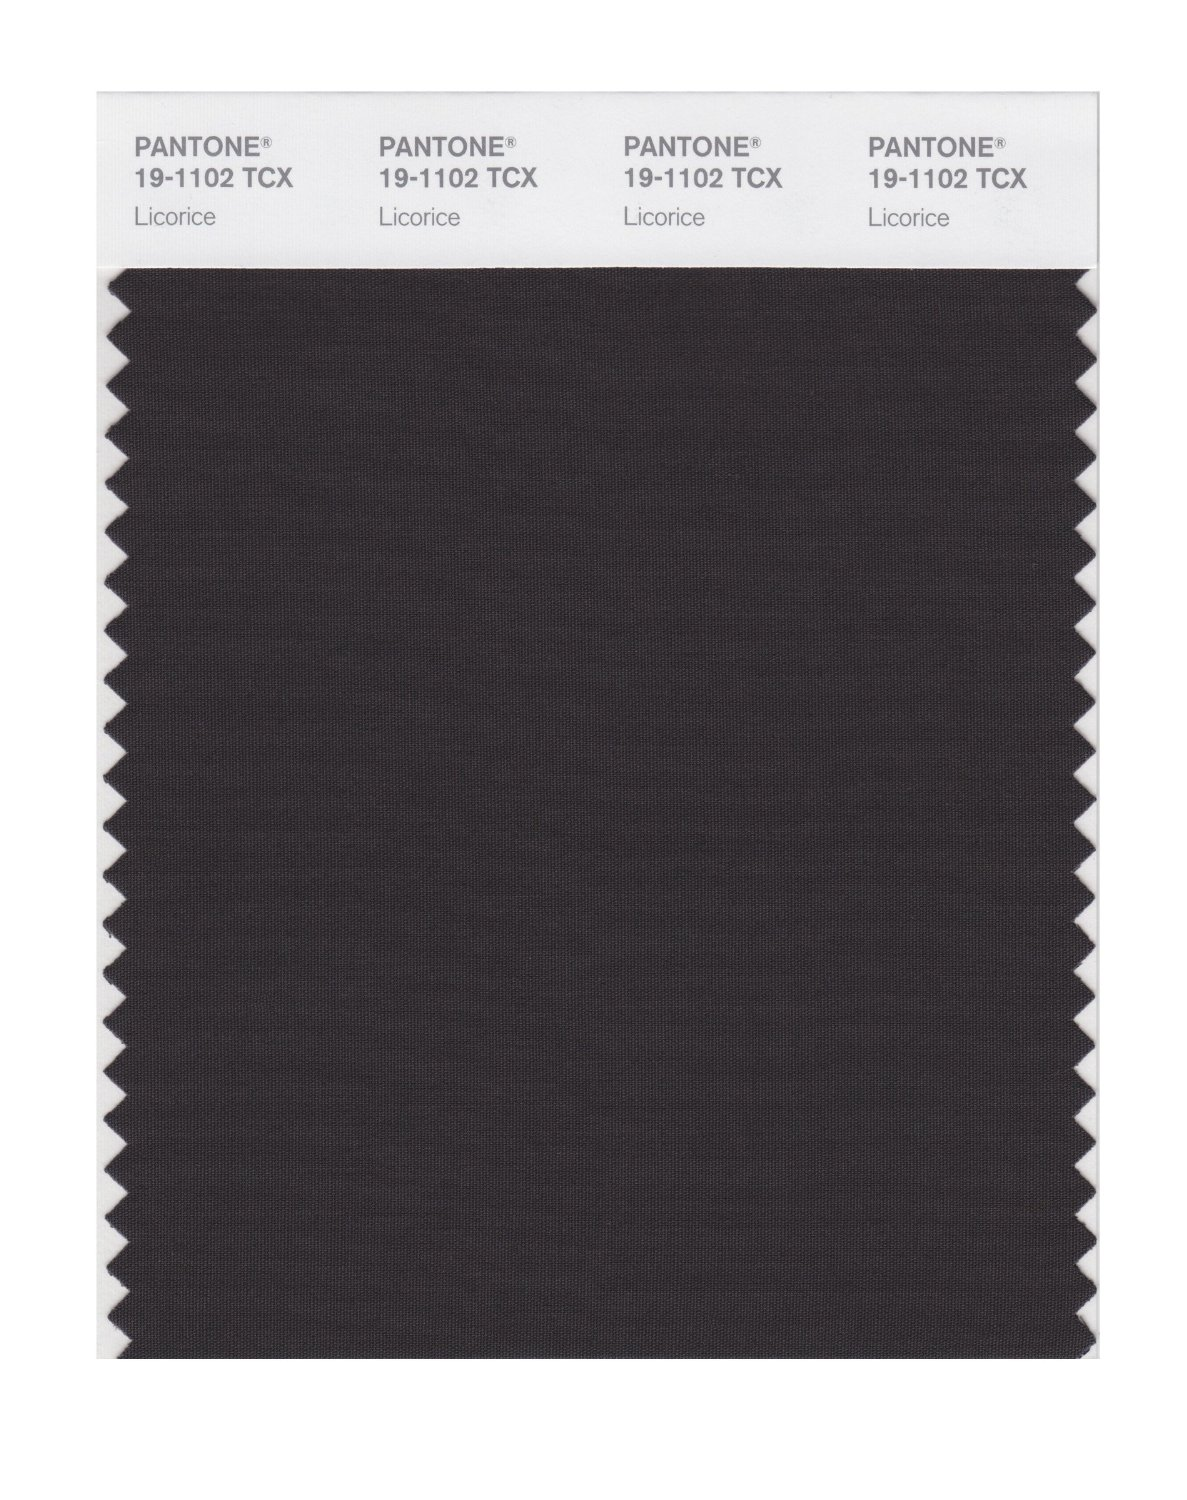 Pantone Smart Swatch 19-1102 Licorice